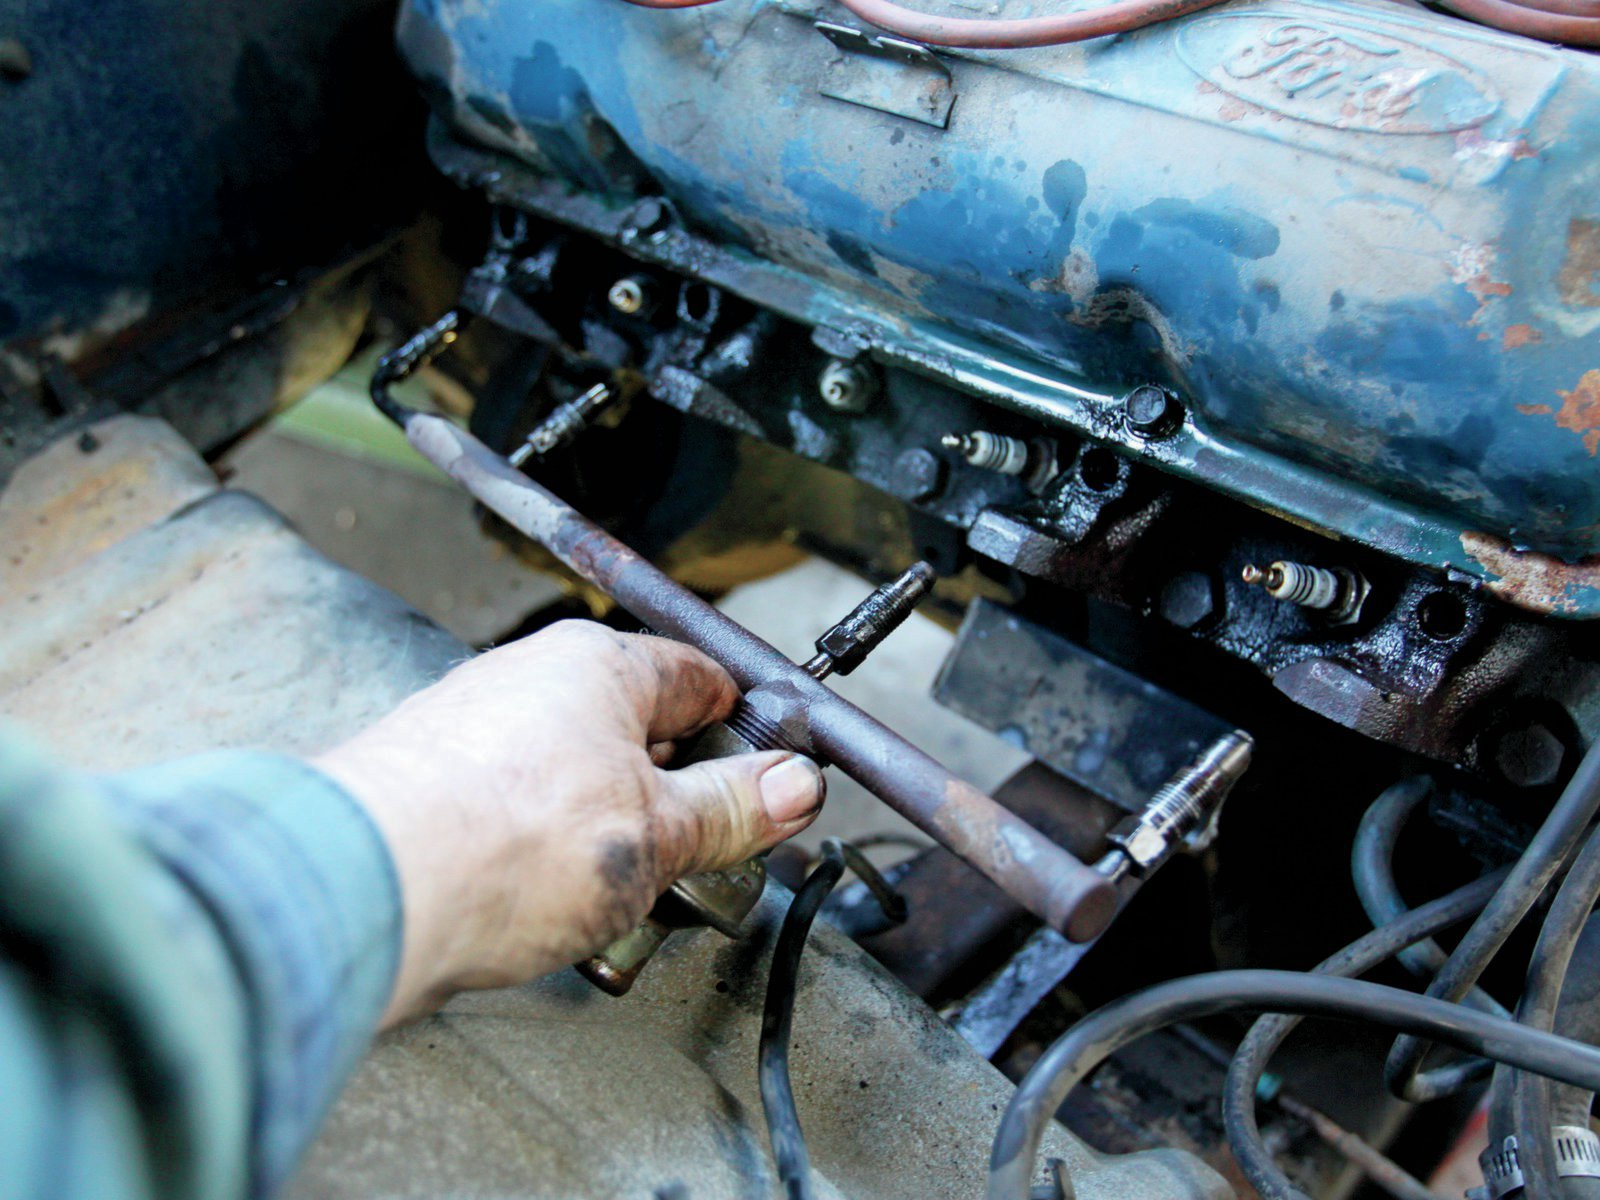 19. Removing a smog rail can be real mean. Presoak with penetrating oil, and use a flare-nut wrench to avoid rounding the flats.